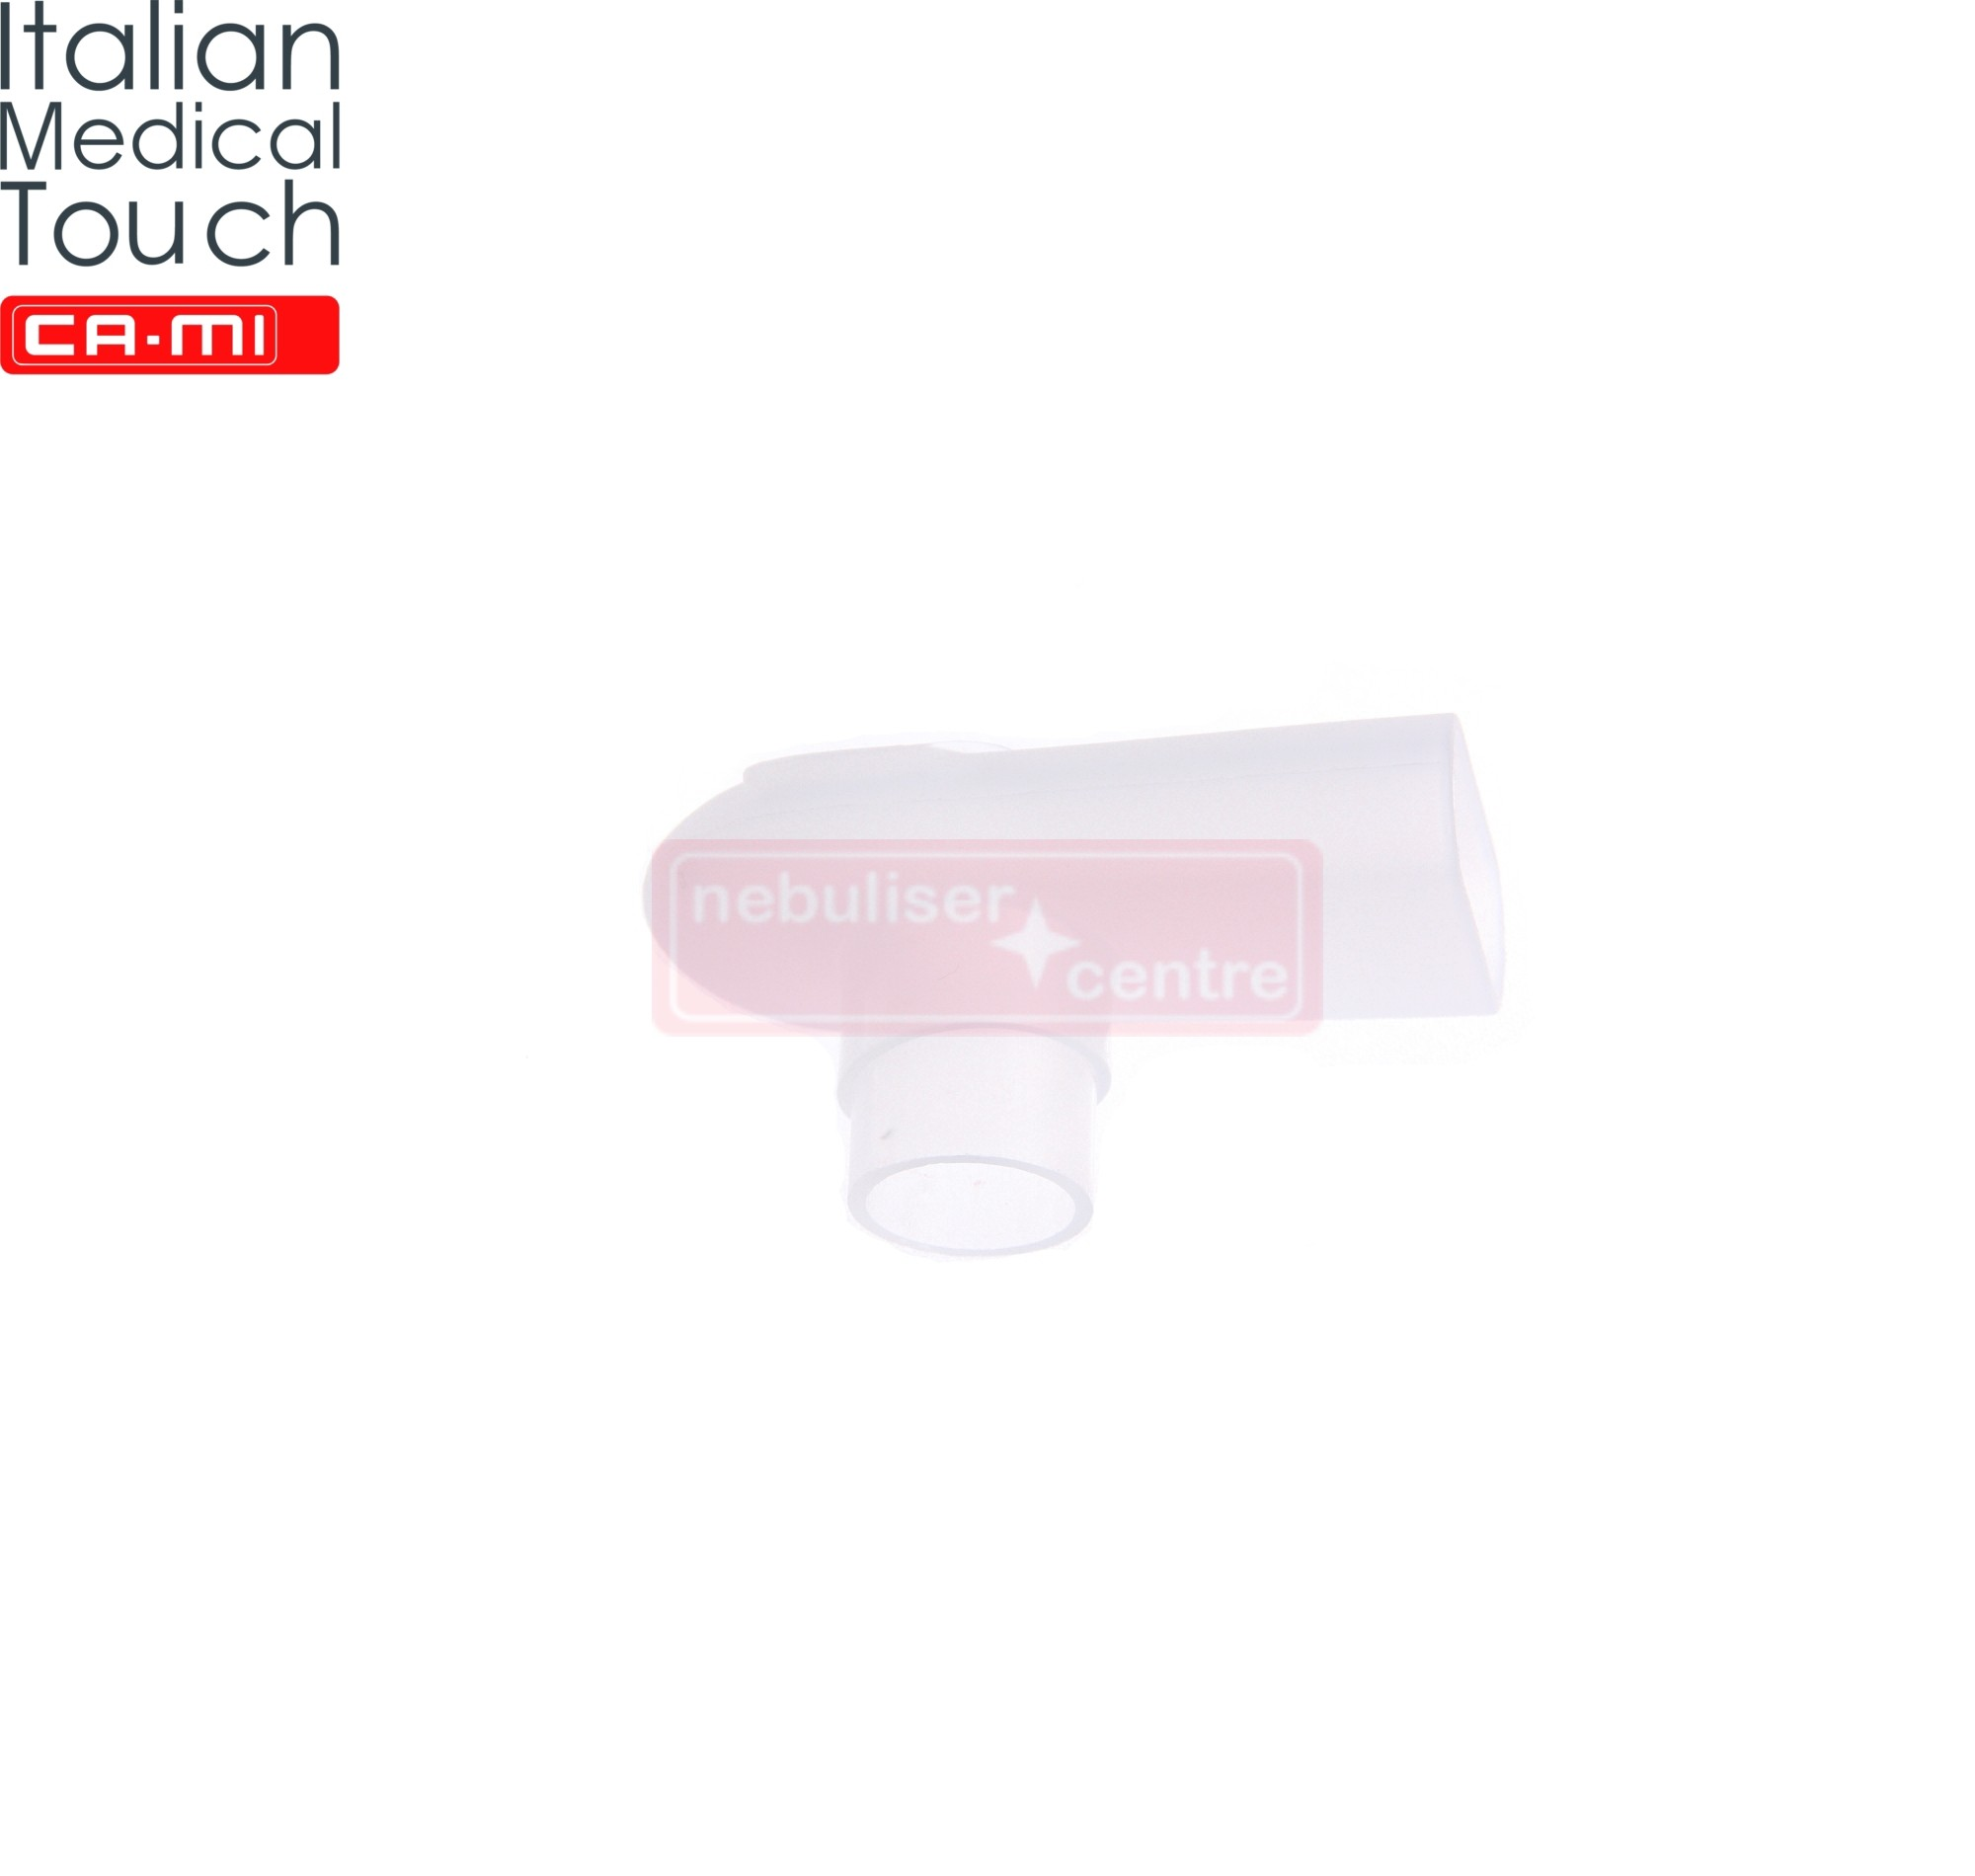 Nebulizer Mouthpiece for CA-MI HiFlo nebulizers